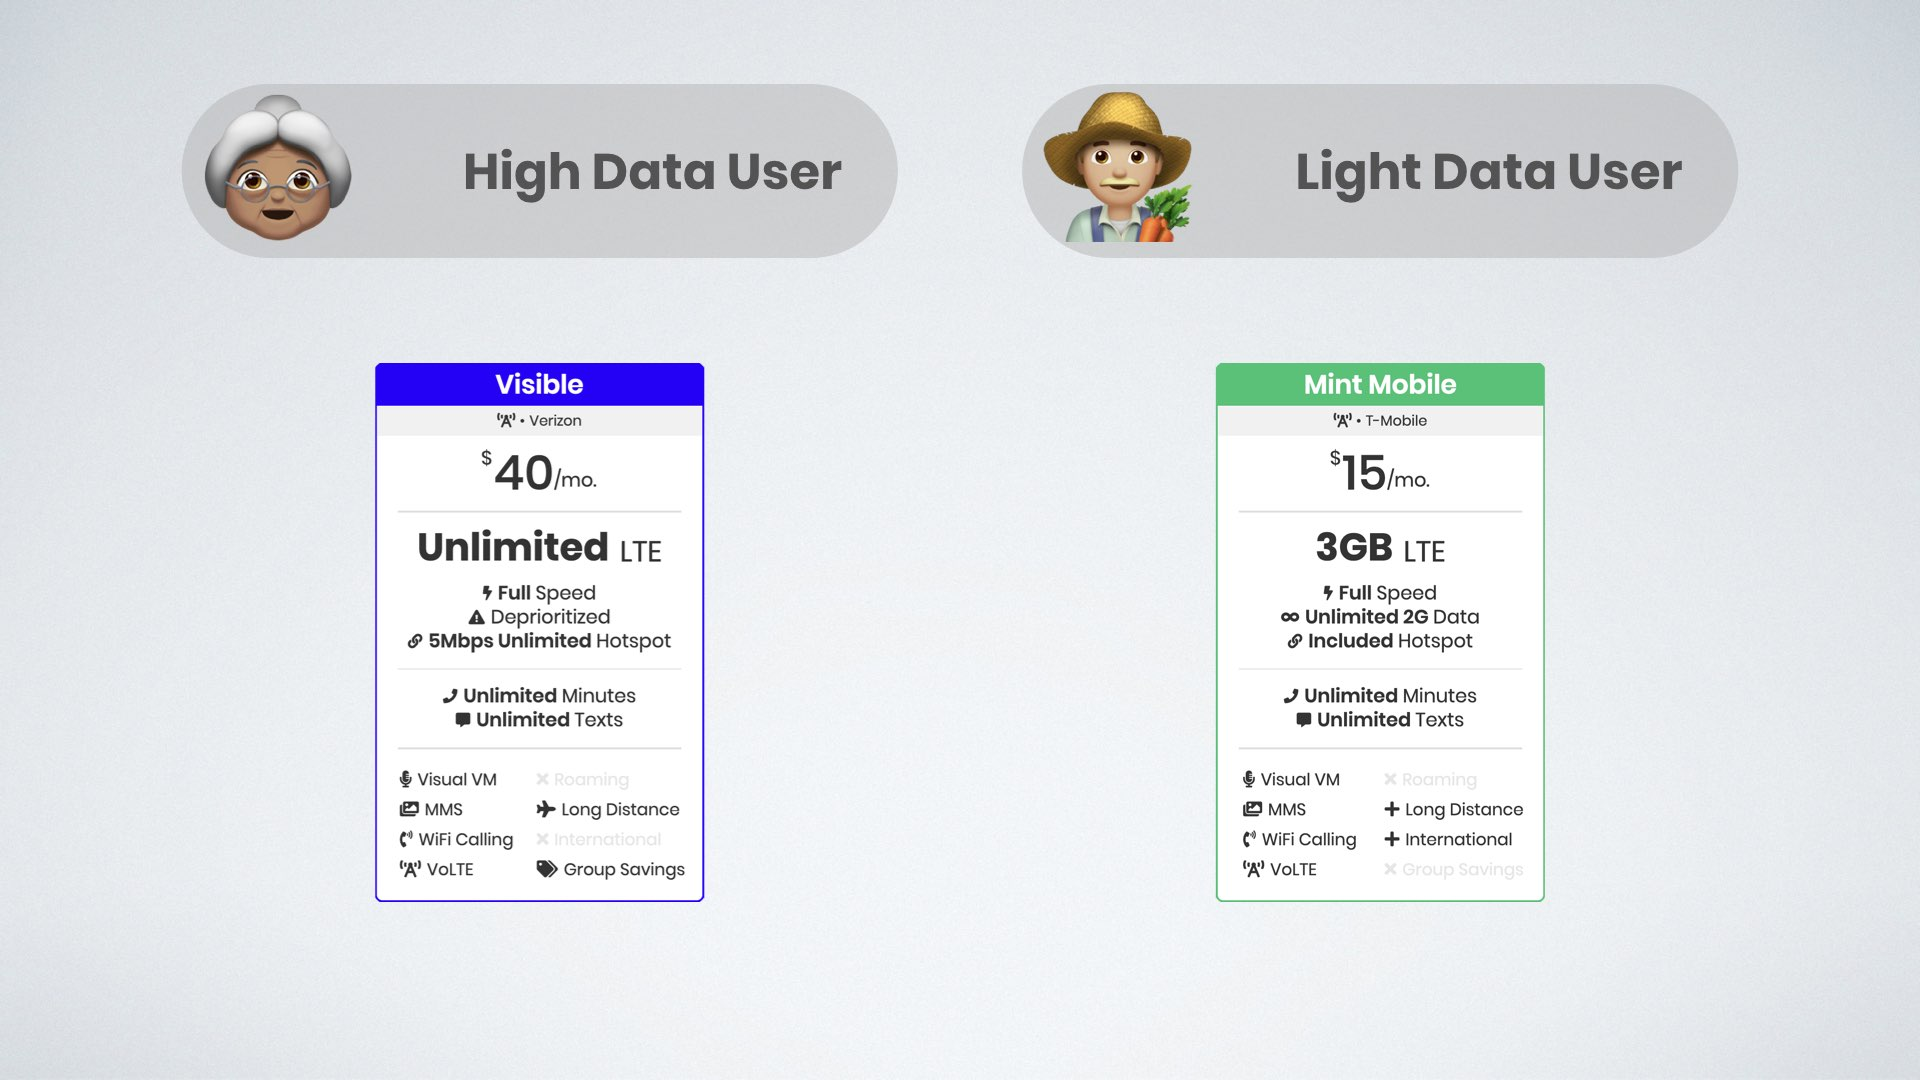 icon of grandmother emoji as high data user on Visible's unlimited plan next to farmer emoji who is light data user on Mint Mobile's 3GB plan